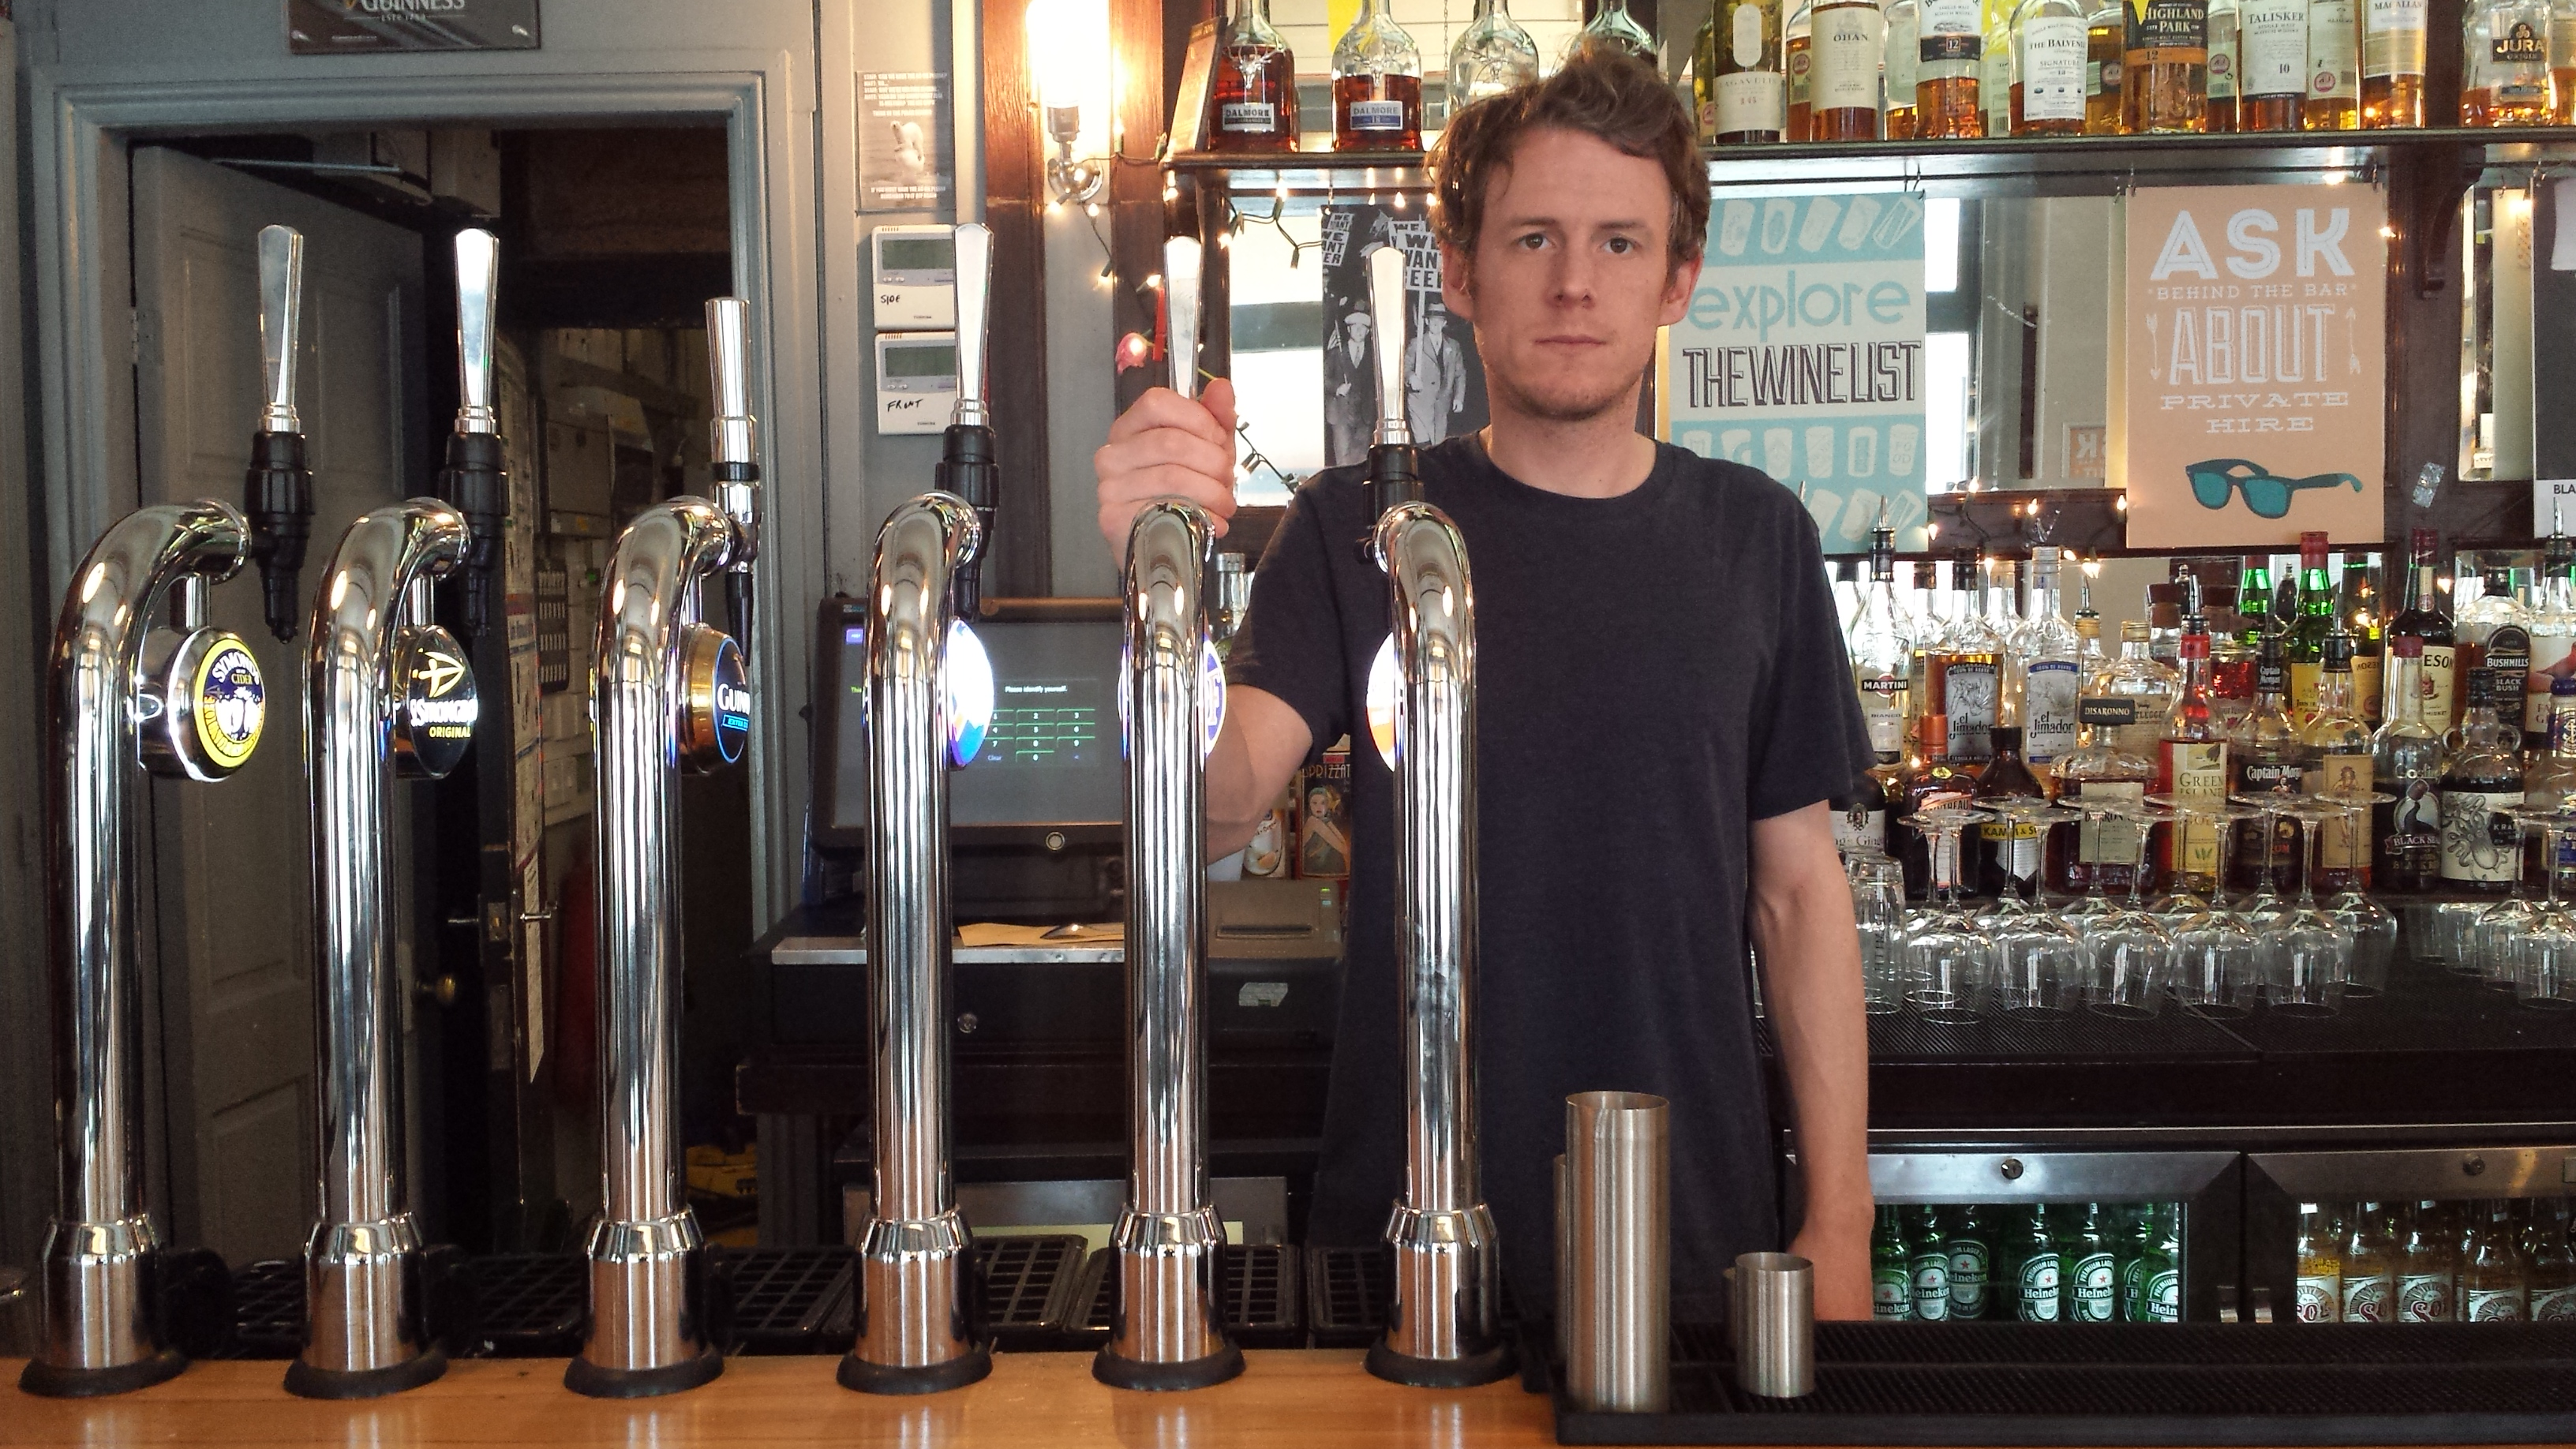 pub managers oppose late night booze tax islington nowislington now late night booze tax paul henealy assistant bar manager